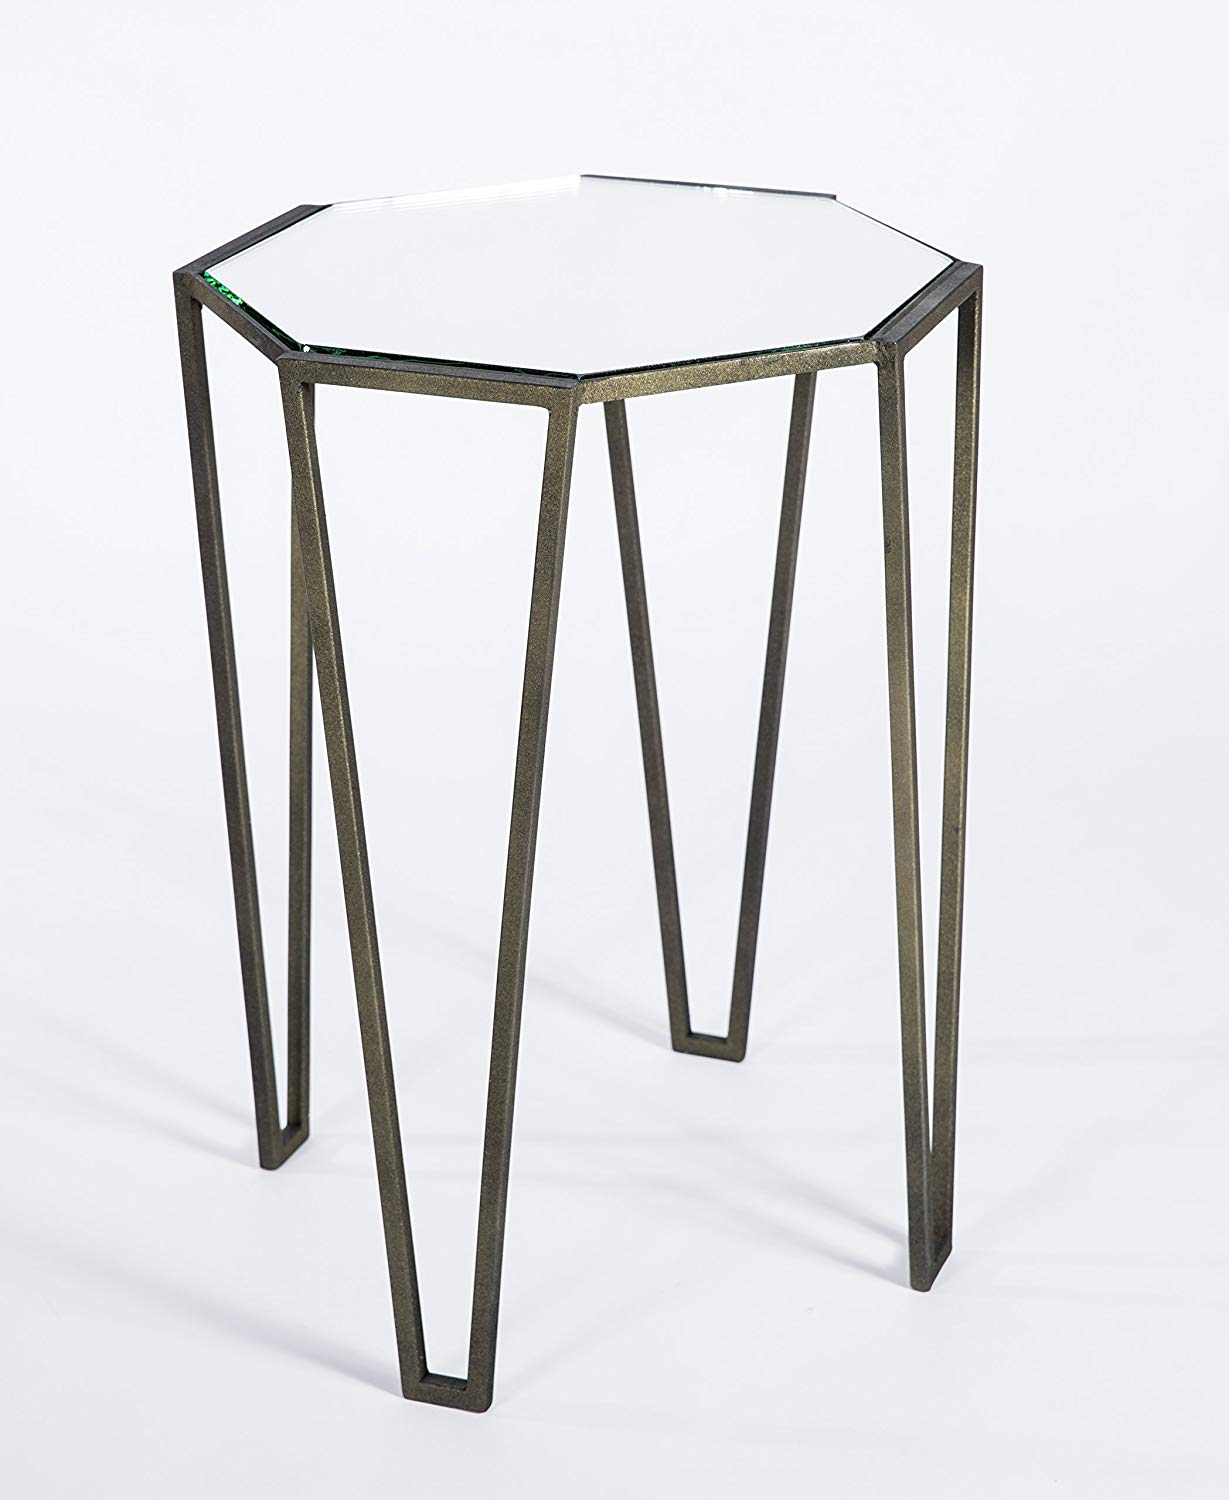 knox and harrison pointed leg occasional accent table mirror antique bronze with mirrored top kitchen dining target chalk paint man cave furniture white dresser laminate floor